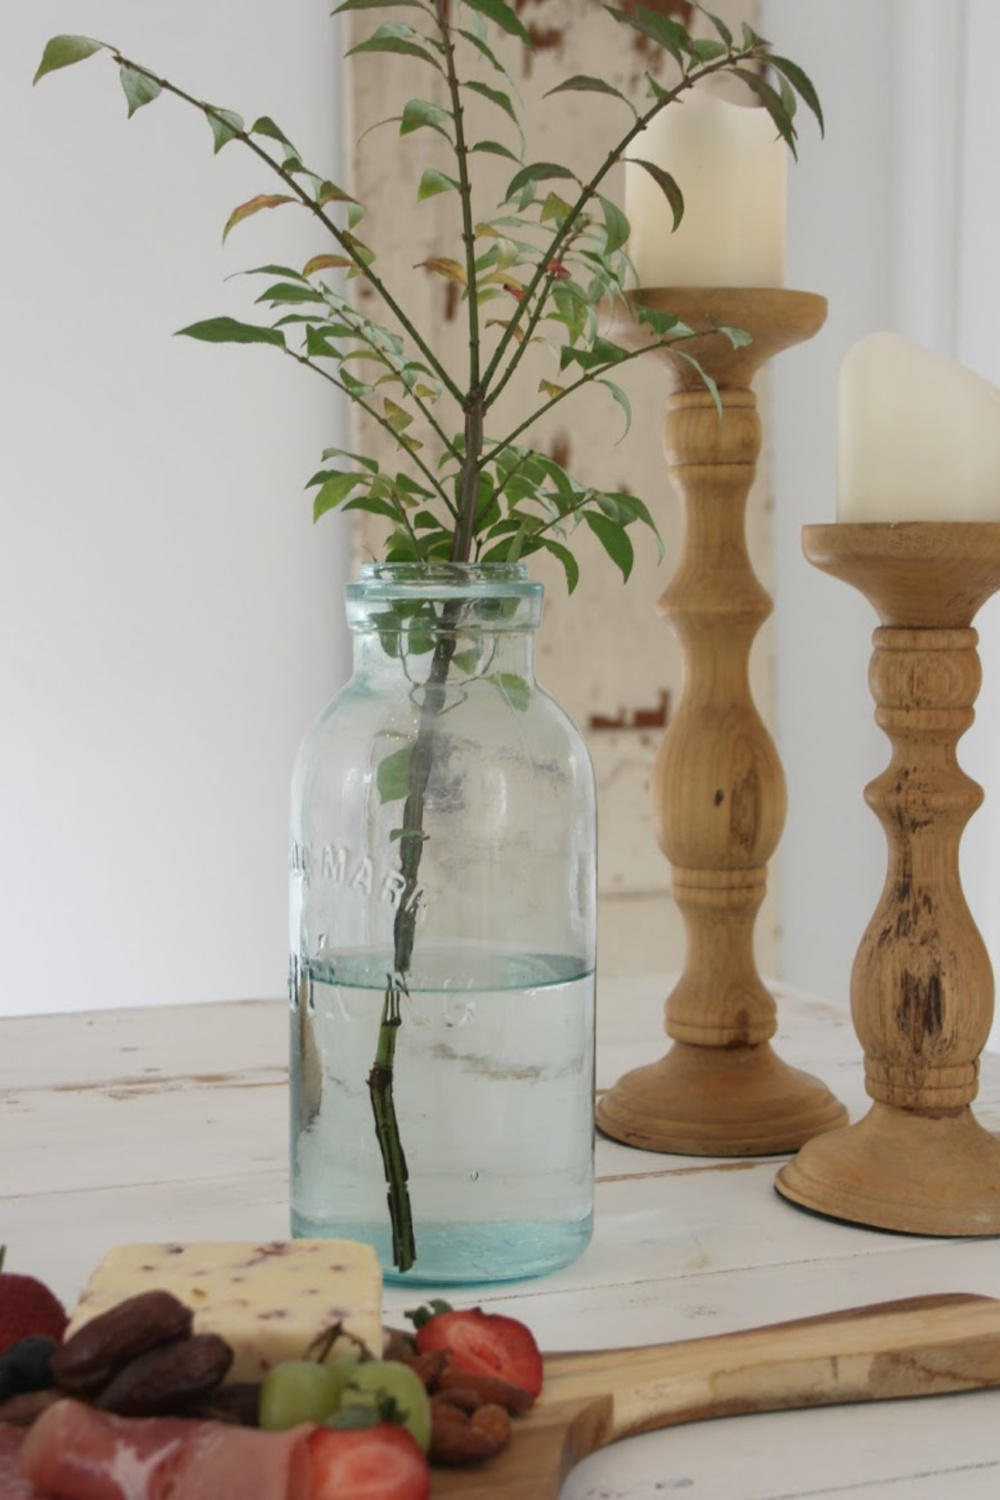 Hello Lovely Studio serene vignette with branch and rustic candle holders. Come score ideas for a Timeless and Tranquil European Country Inspired Look. #europeancountry #interiordesign #frenchcountry